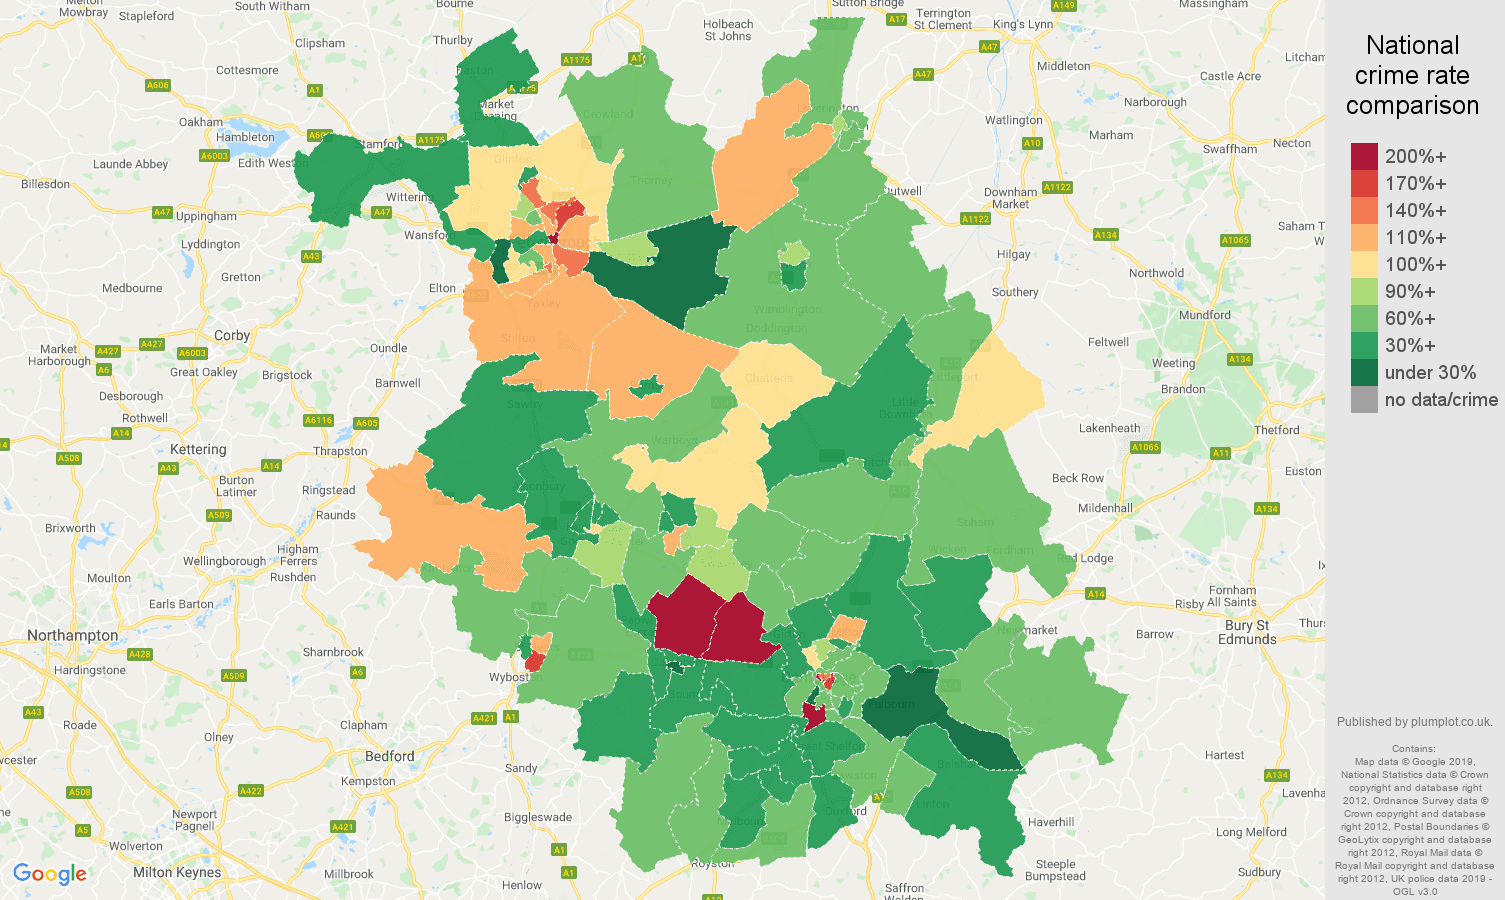 Cambridgeshire other theft crime rate comparison map